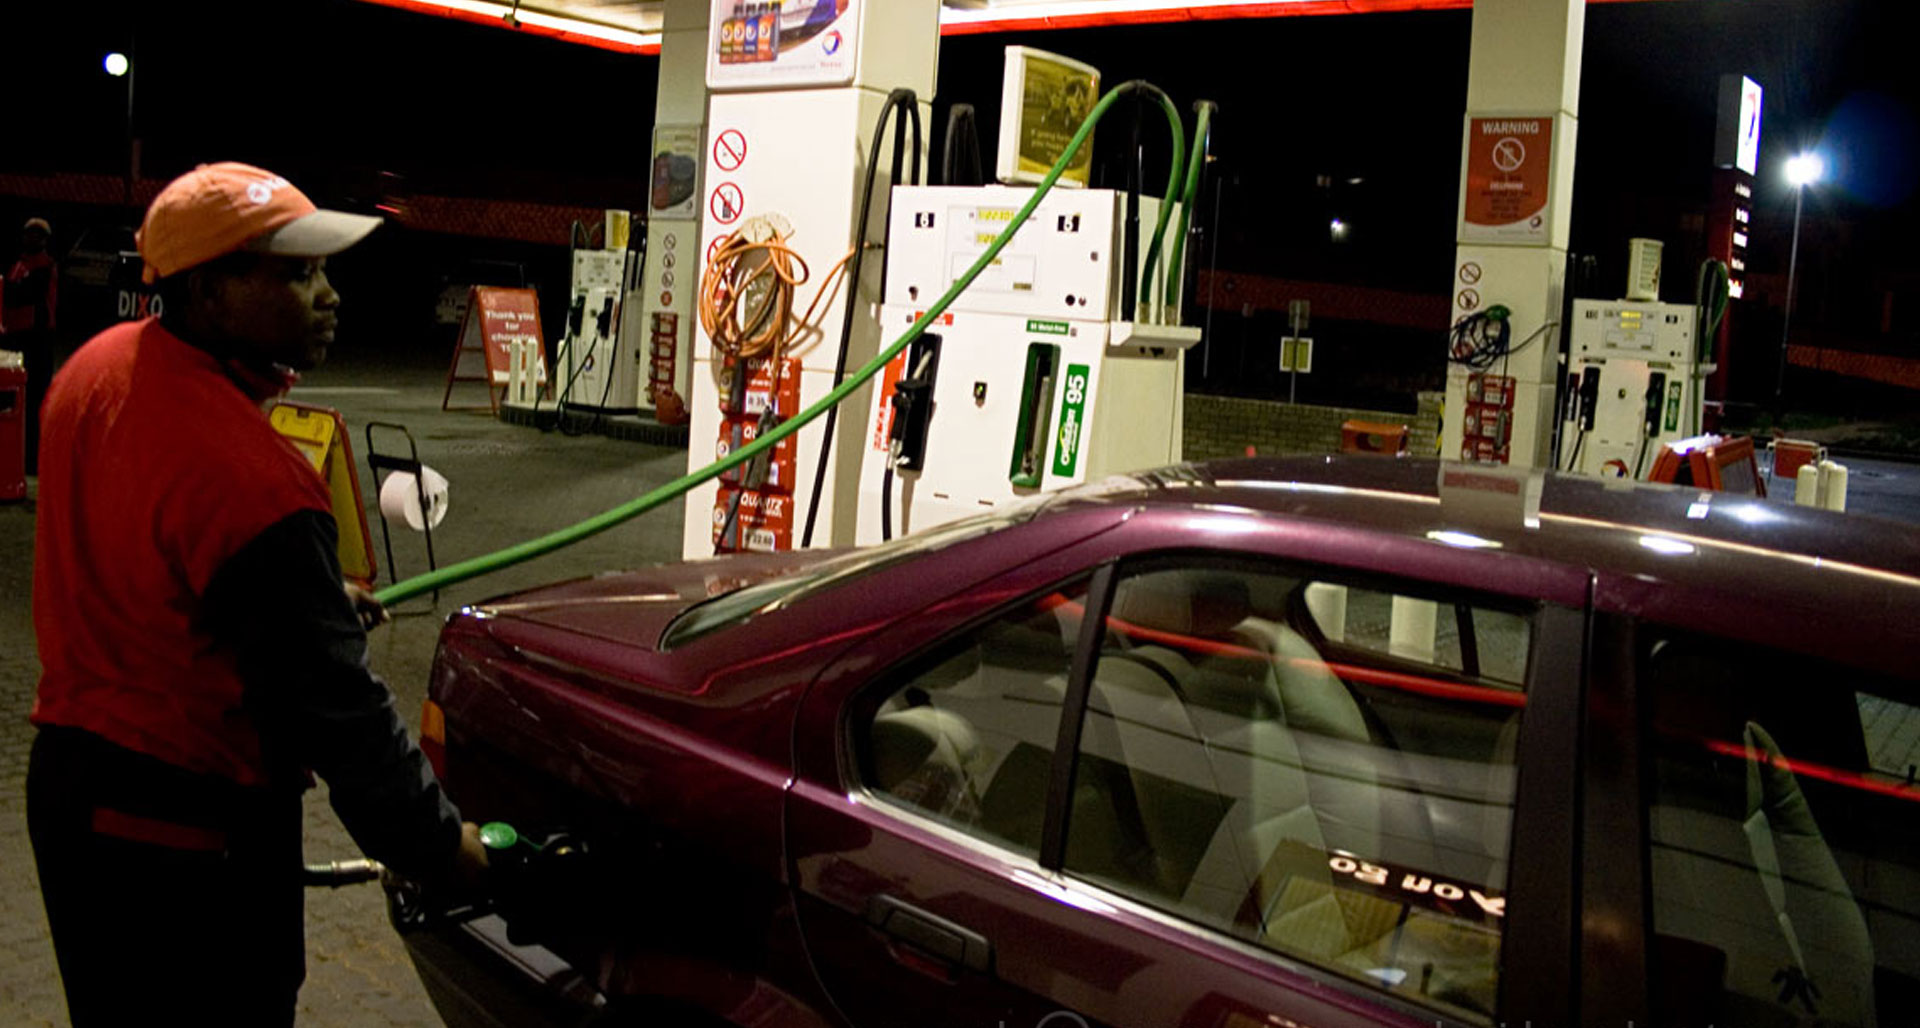 Fuel Retailers In Price Squeeze